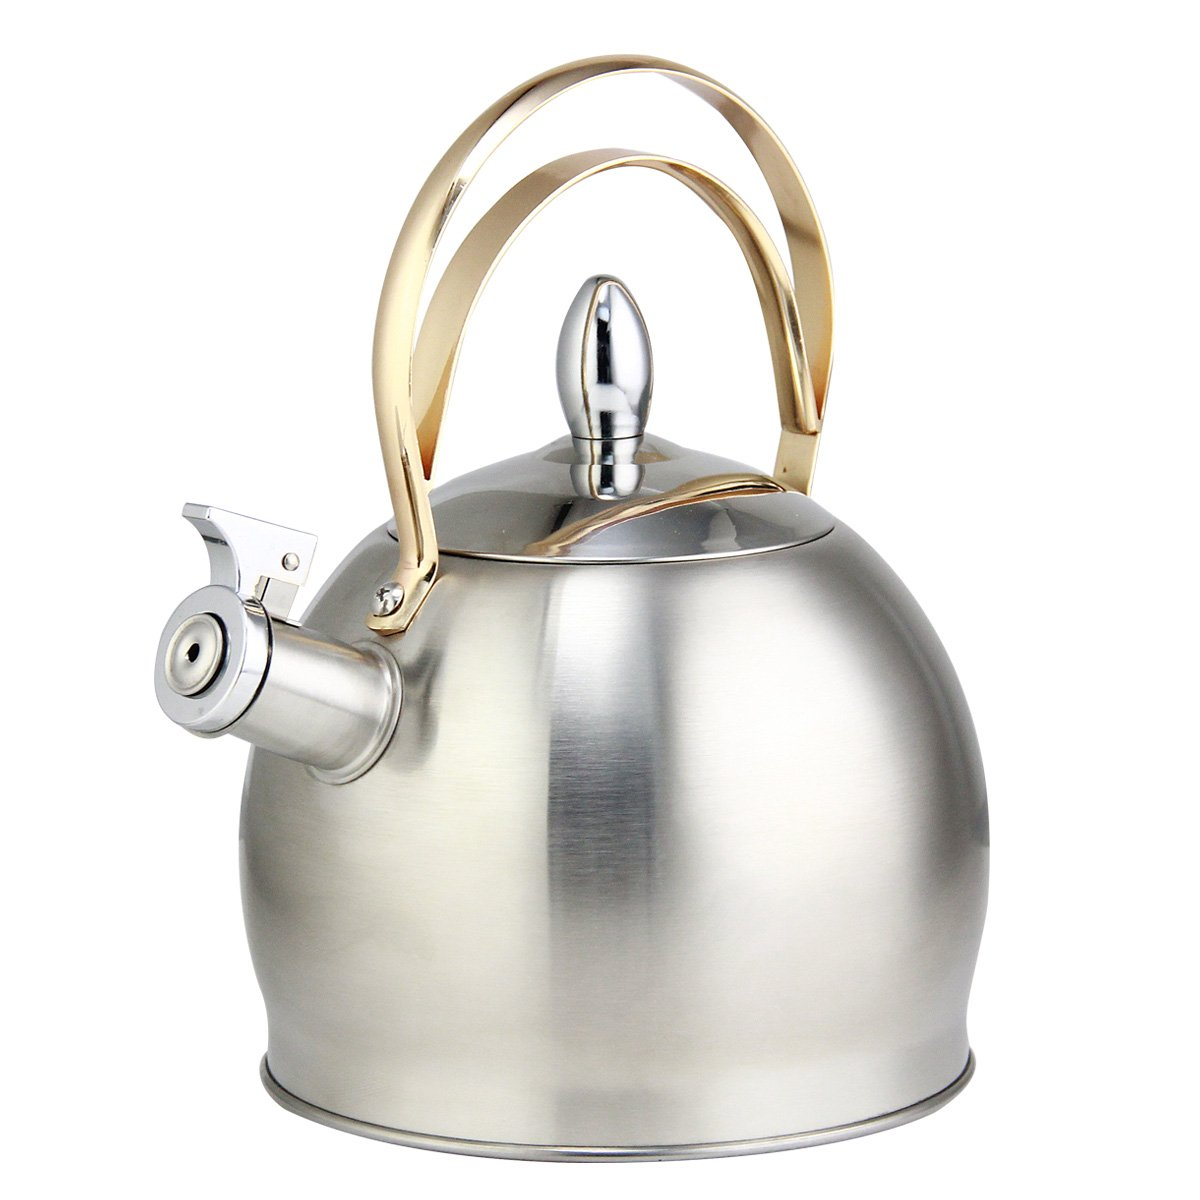 Riwendell Stainless Steel Whistling Tea Kettle 3.2-Quart StoveTop Kettle Teapot with Copper Handle